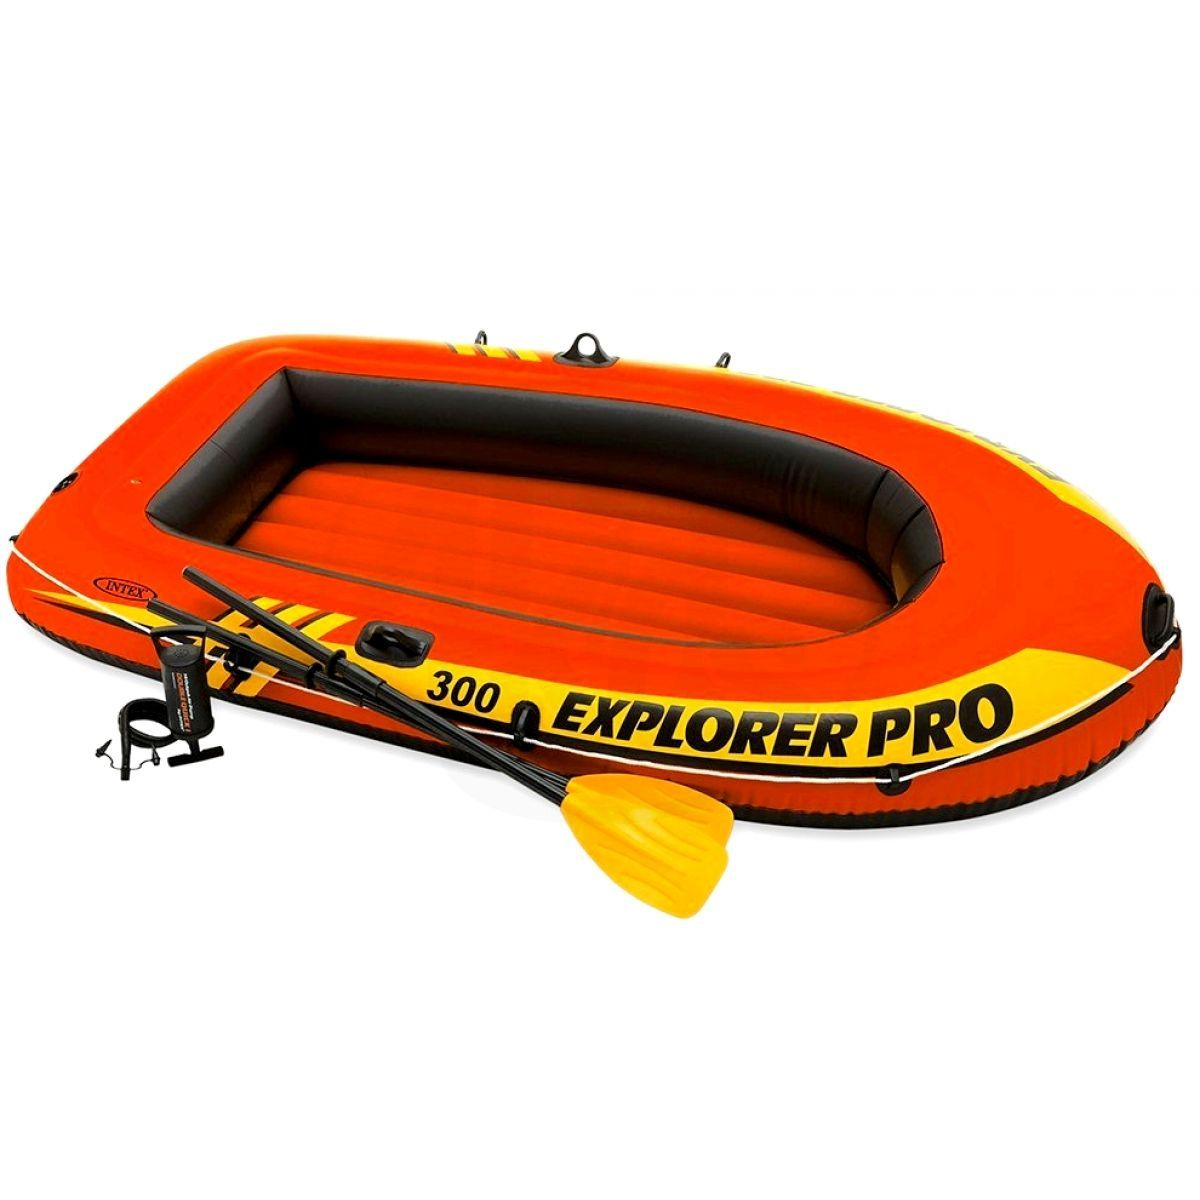 Intex 58358 Člun Explorer Pro 300 Set